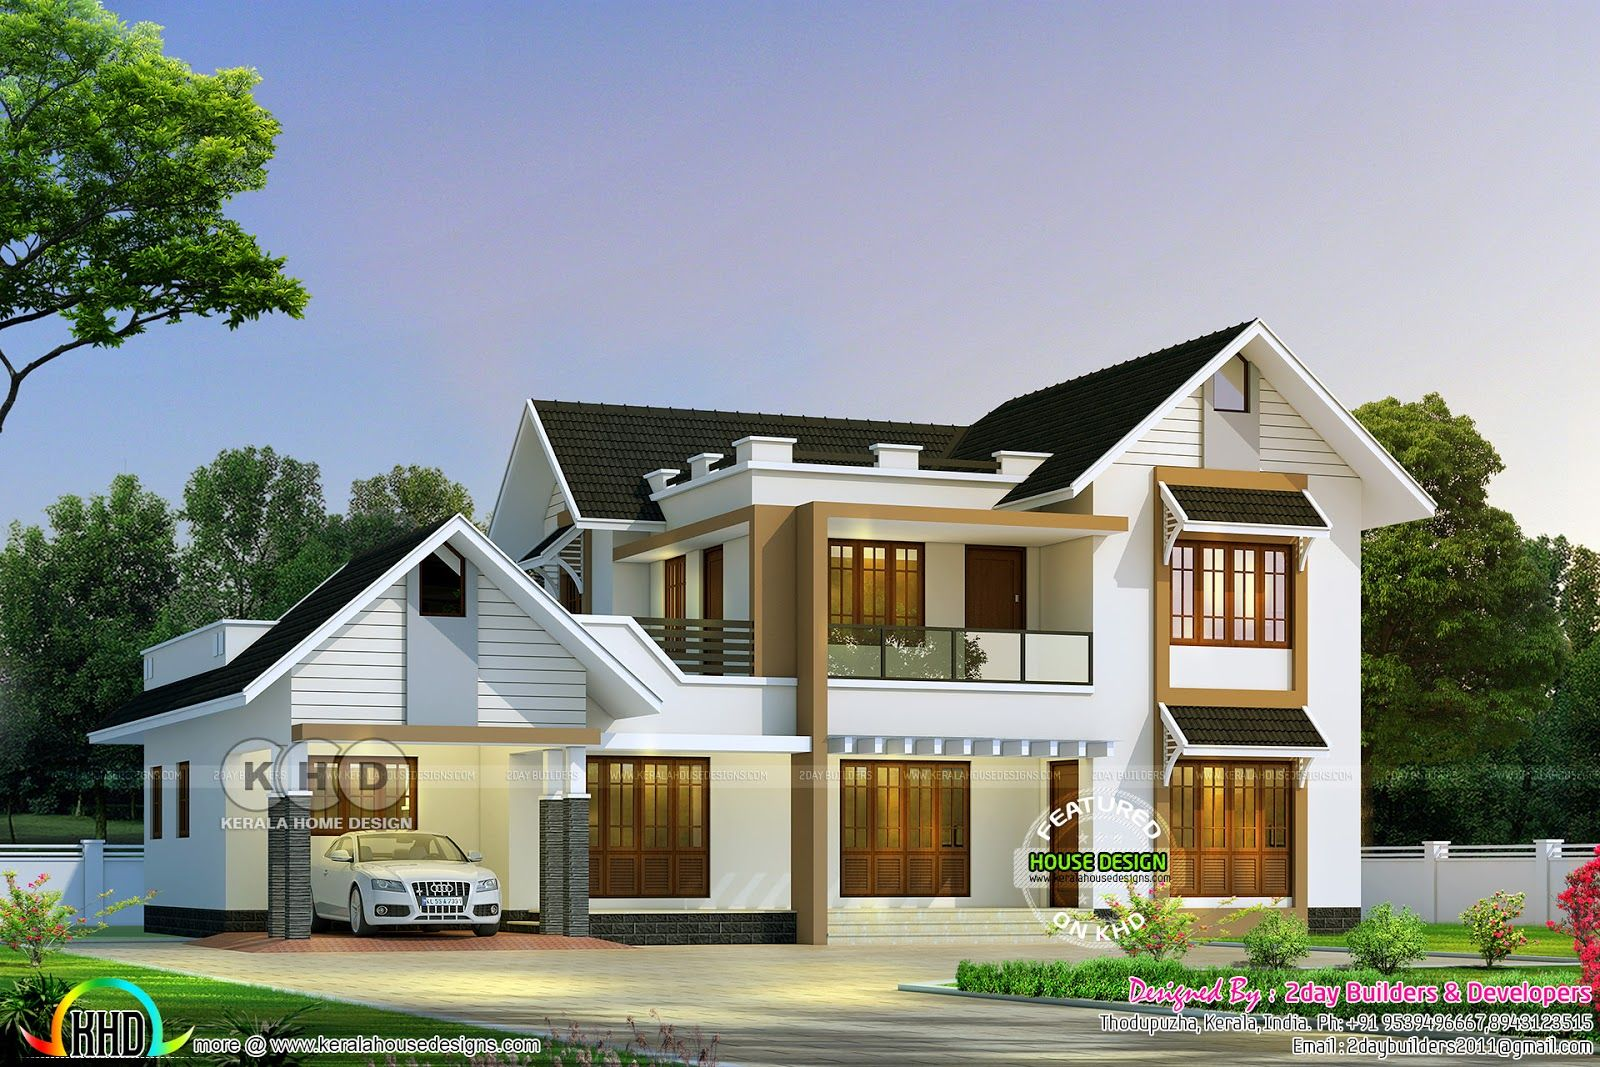 Image result for kerala home designs also in house rh pinterest